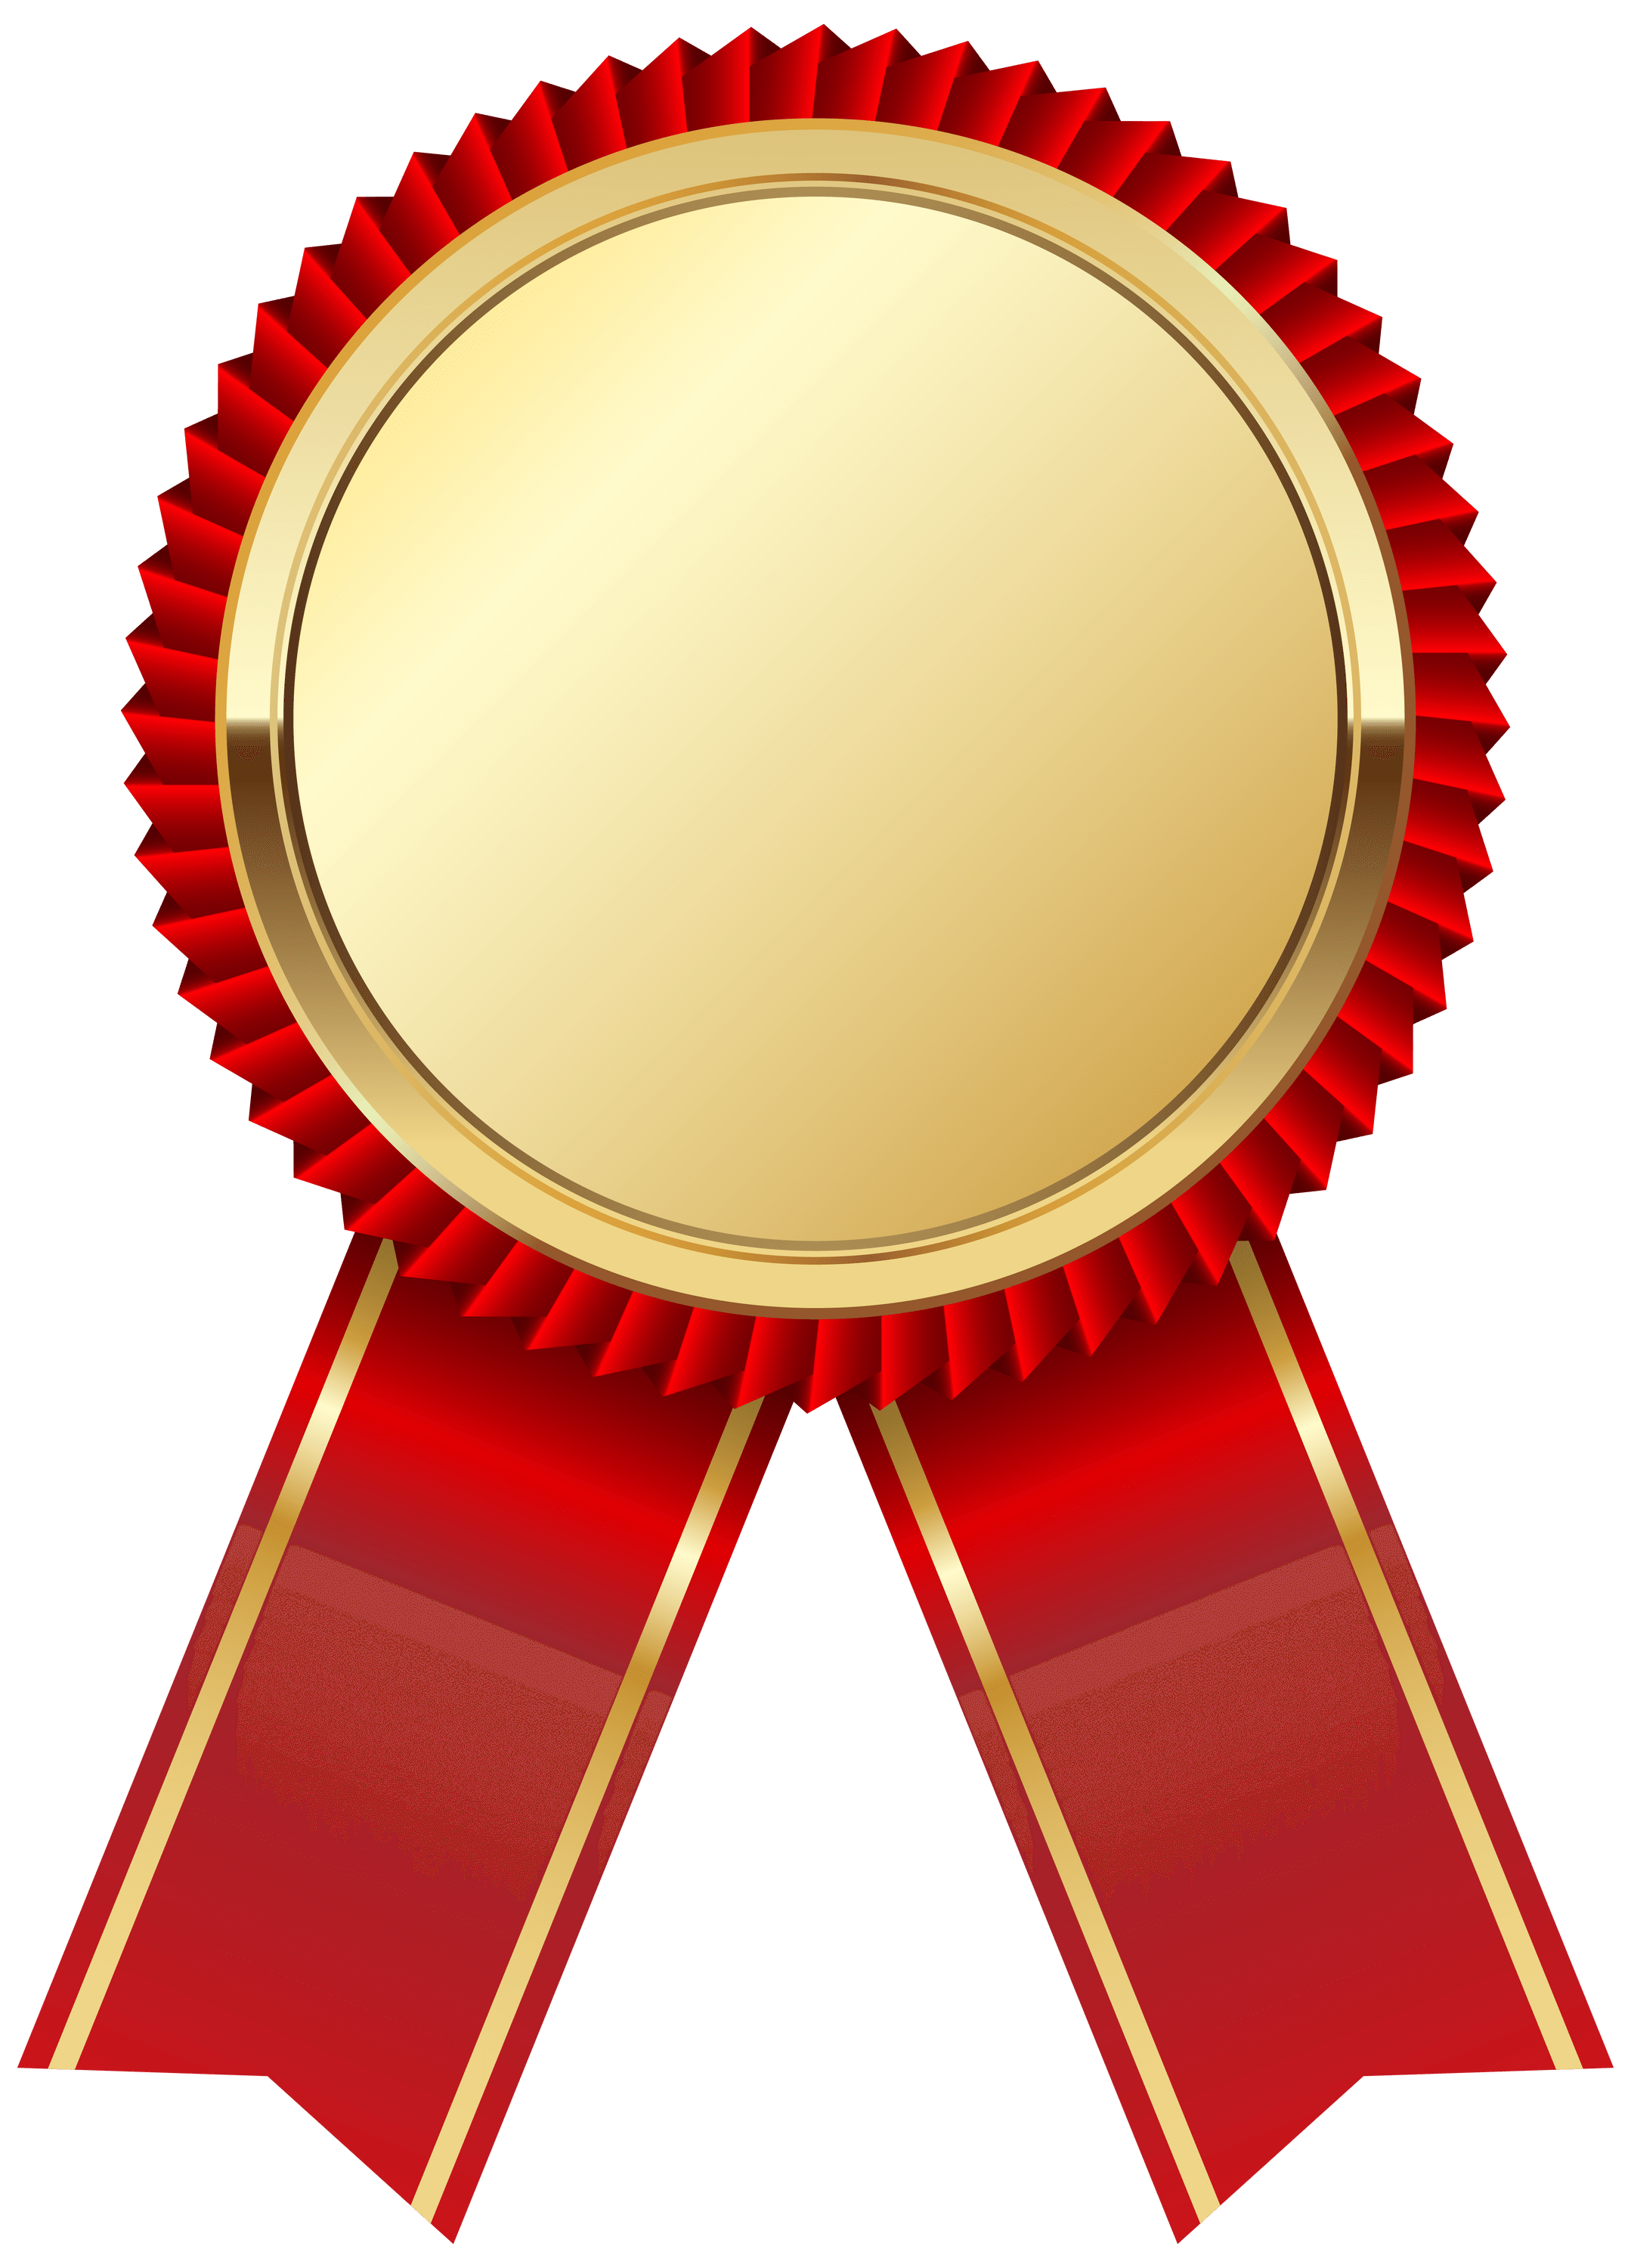 Medal HD PNG - 90714